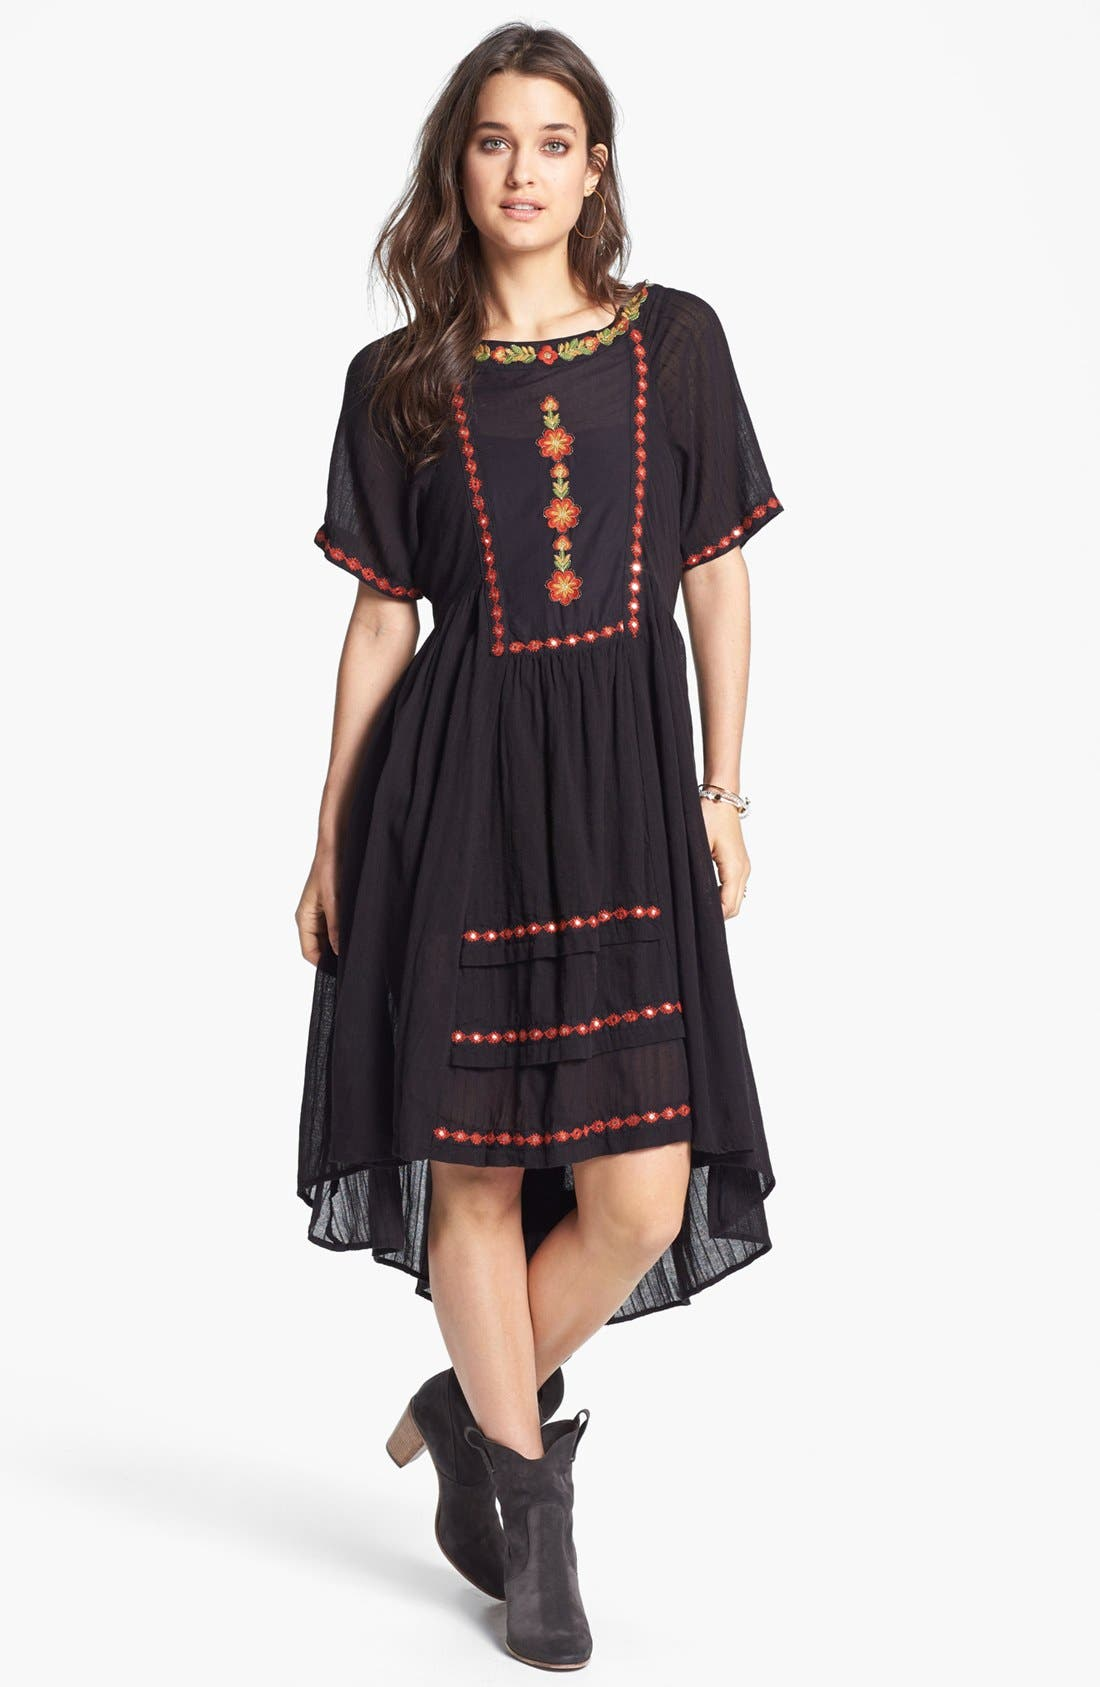 Main Image - Free People 'Folk' Embroidered Cotton High/Low Dress